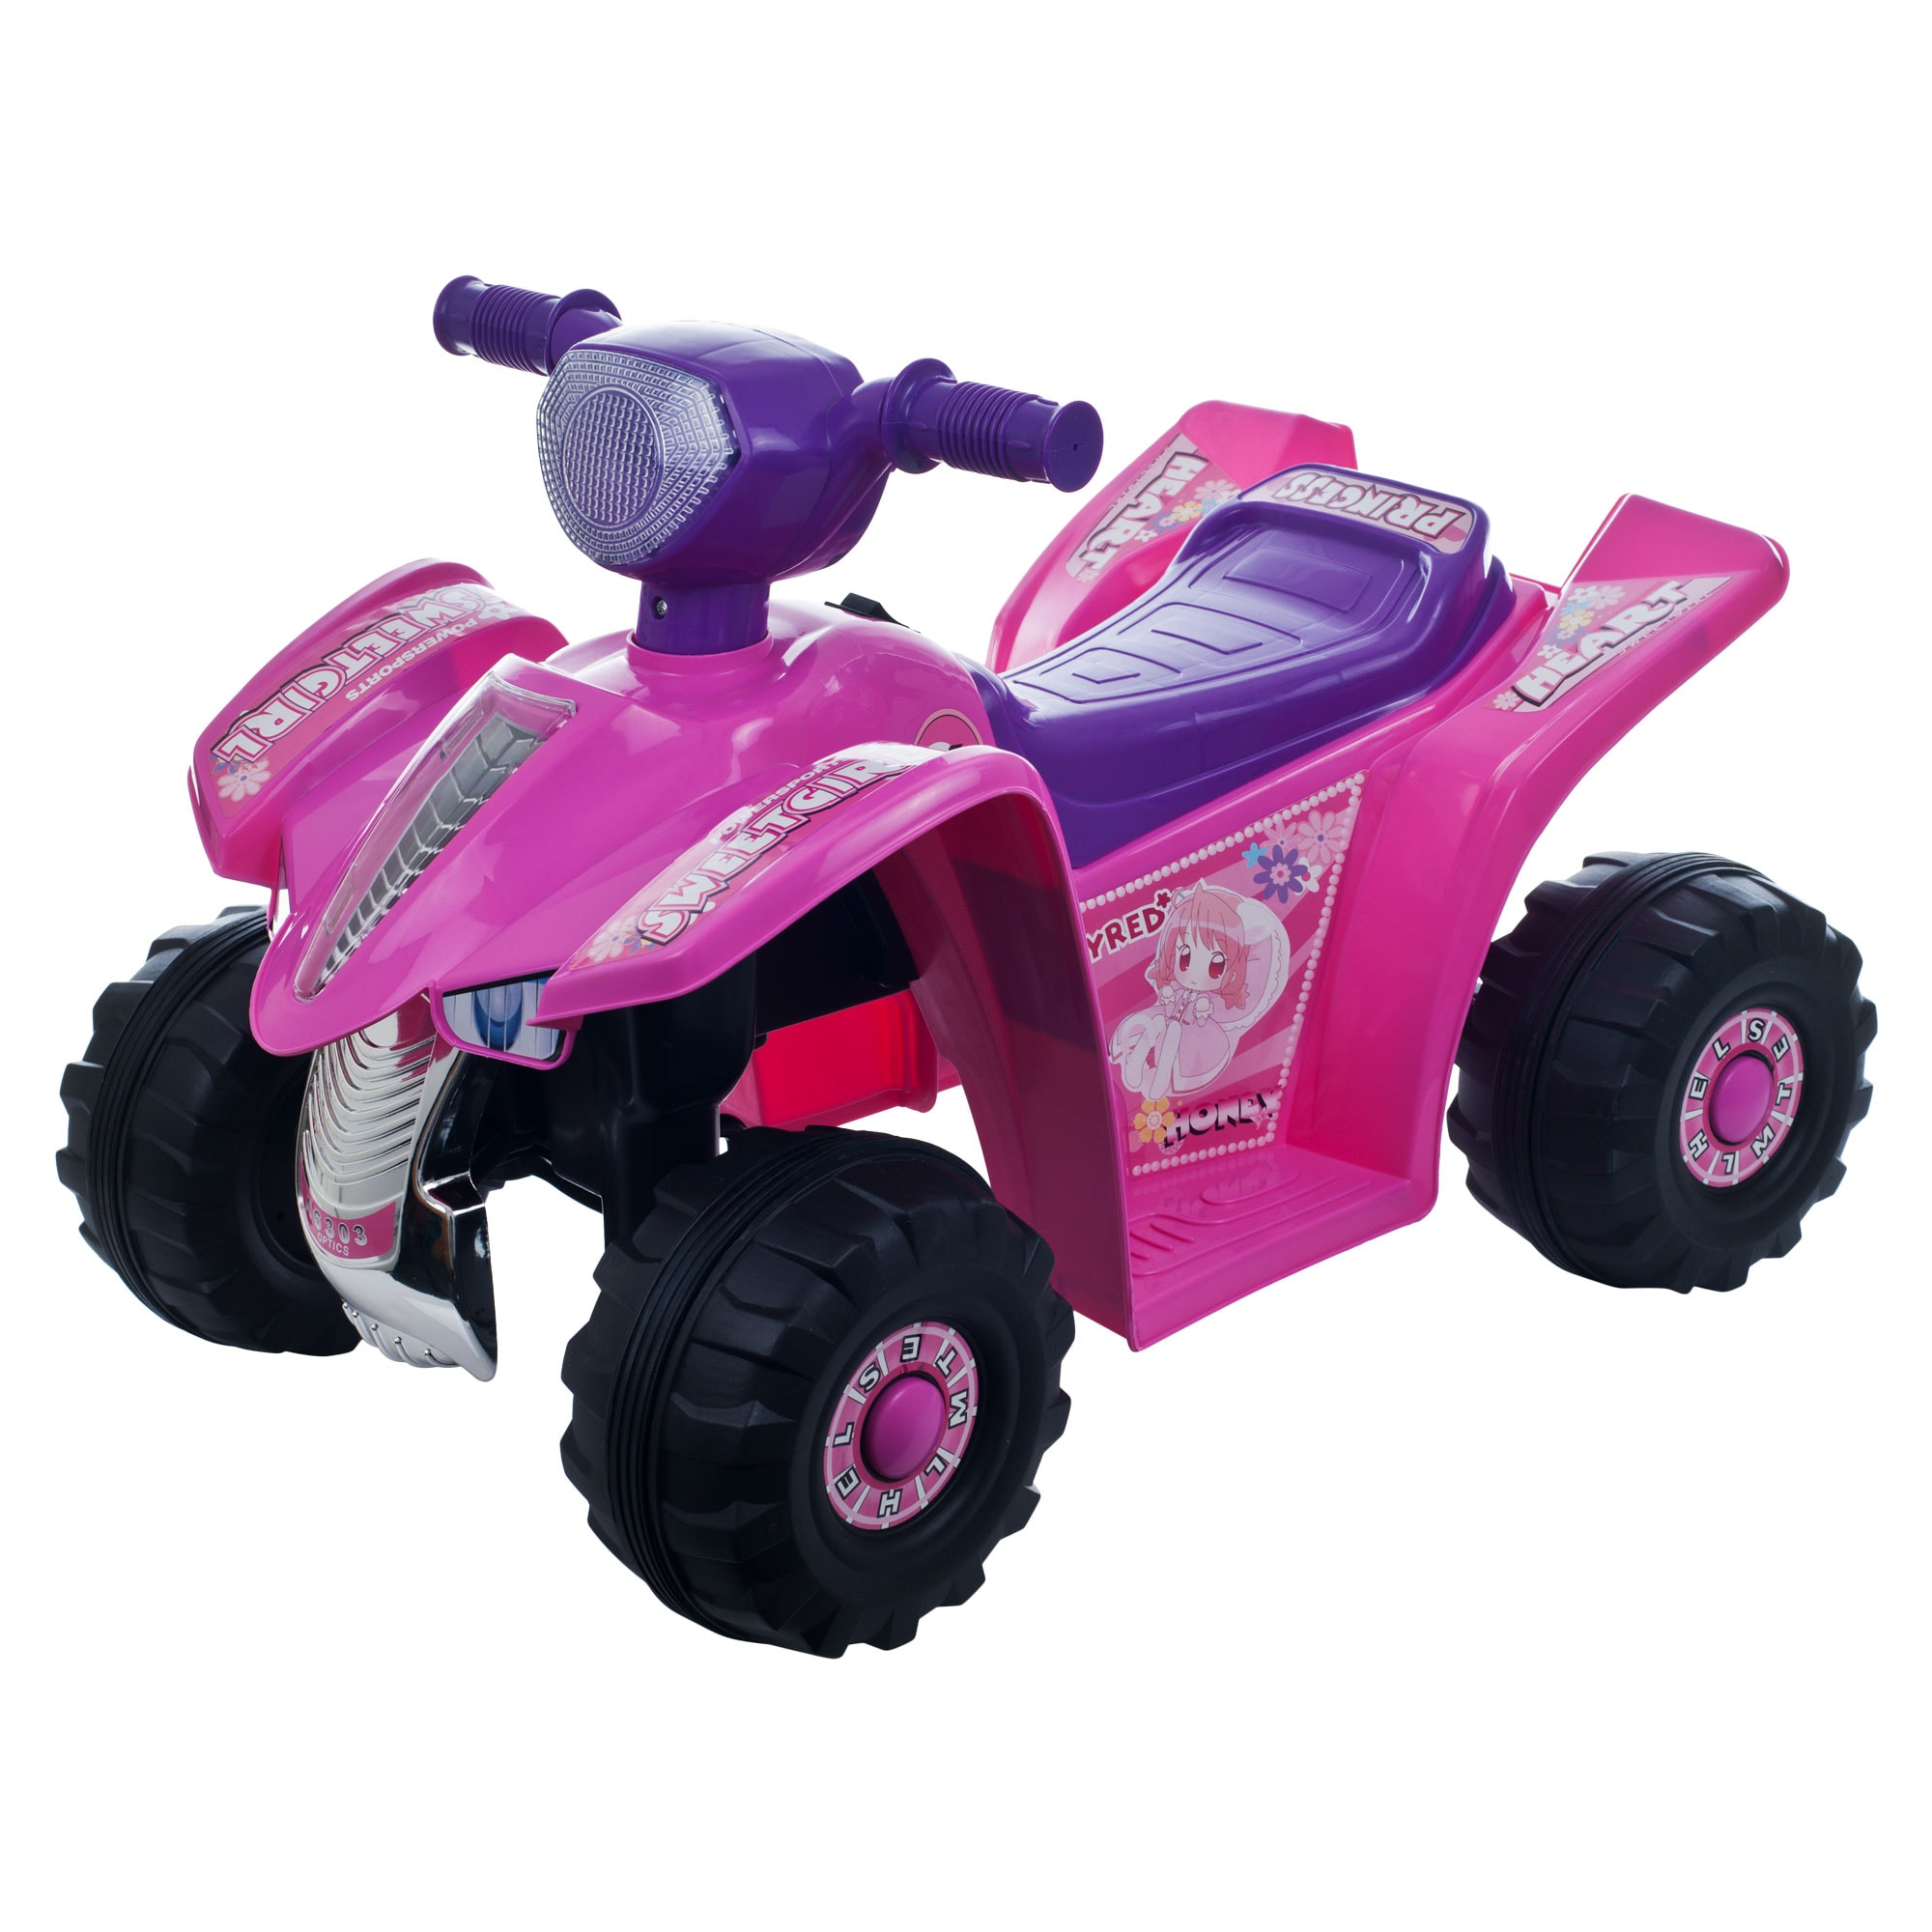 Buy Powered Riding Toys Online at Overstock.com | Our Best Bicycles ...